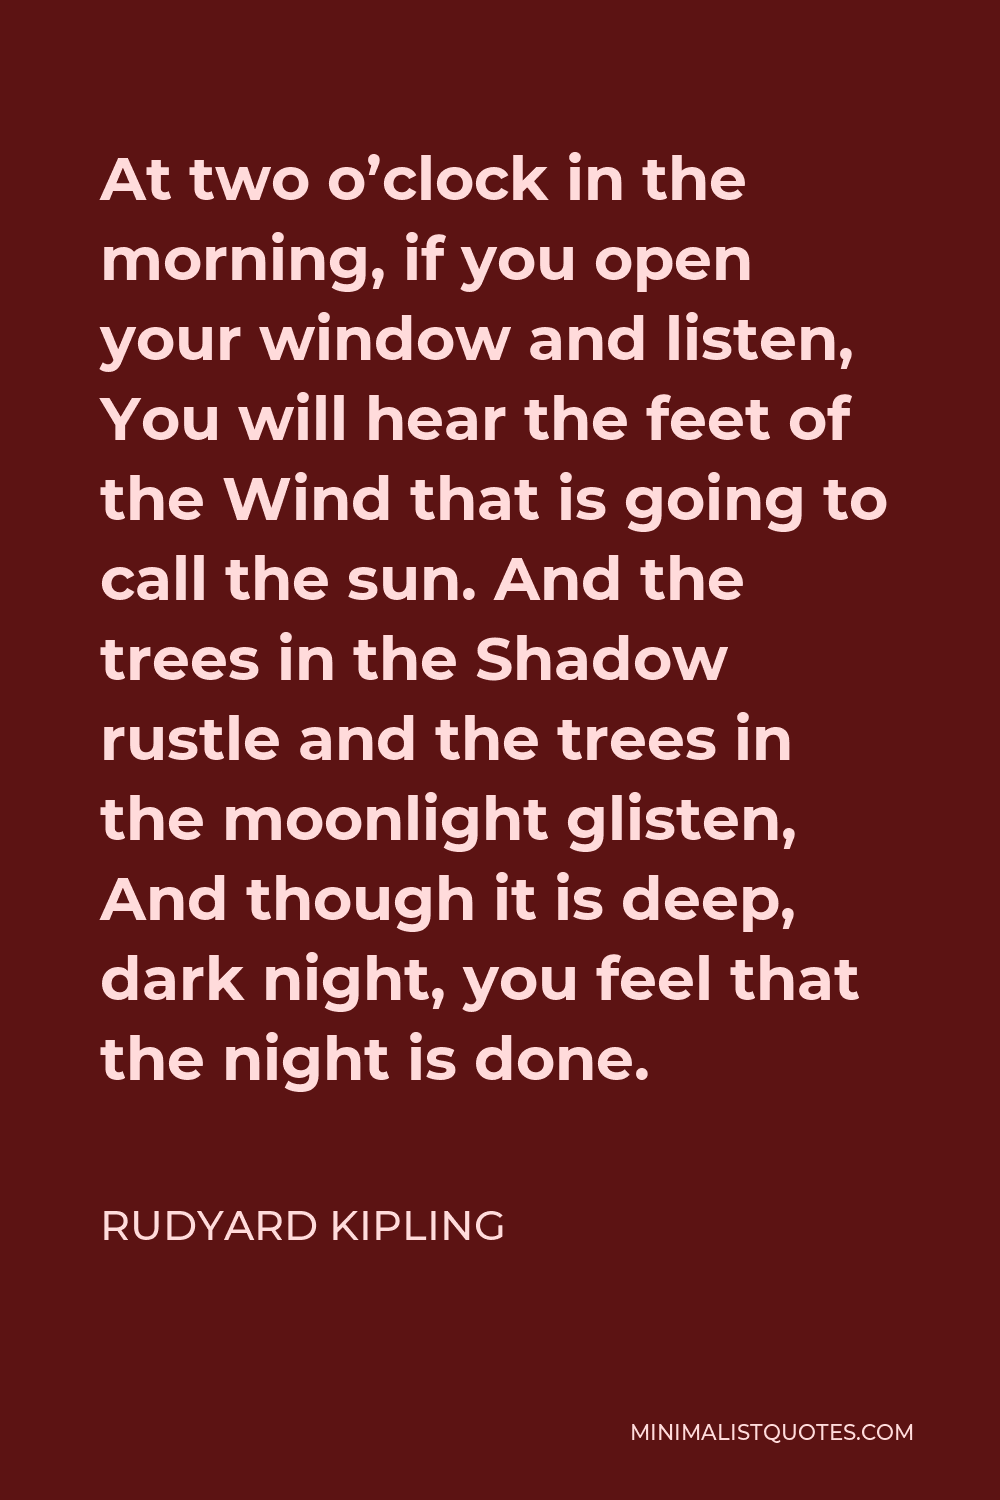 Rudyard Kipling Quote - At two o'clock in the morning, if you open your window and listen, You will hear the feet of the Wind that is going to call the sun. And the trees in the Shadow rustle and the trees in the moonlight glisten, And though it is deep, dark night, you feel that the night is done.